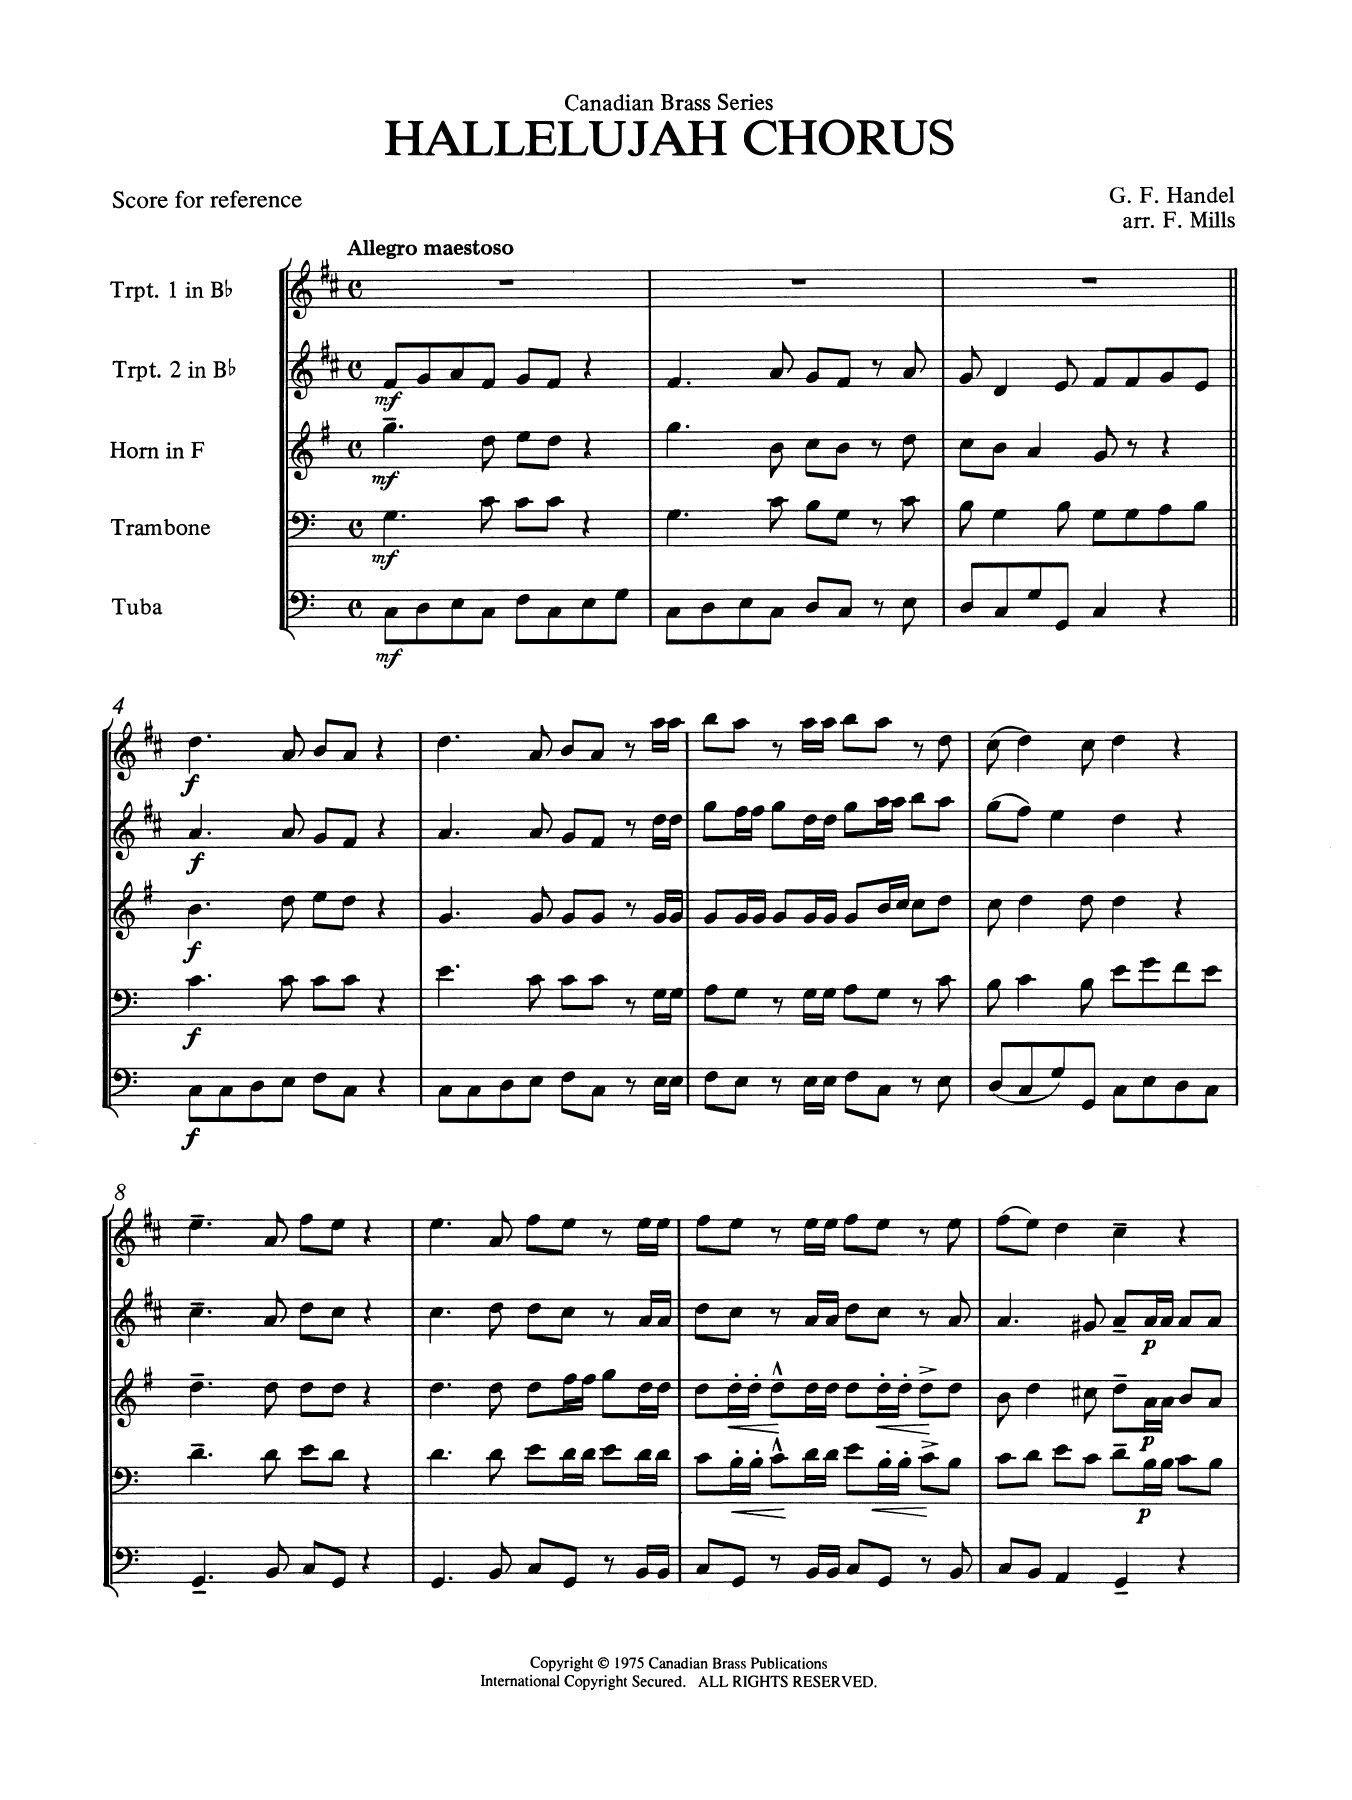 Hallelujah Chorus - Full Score Digitale Noten